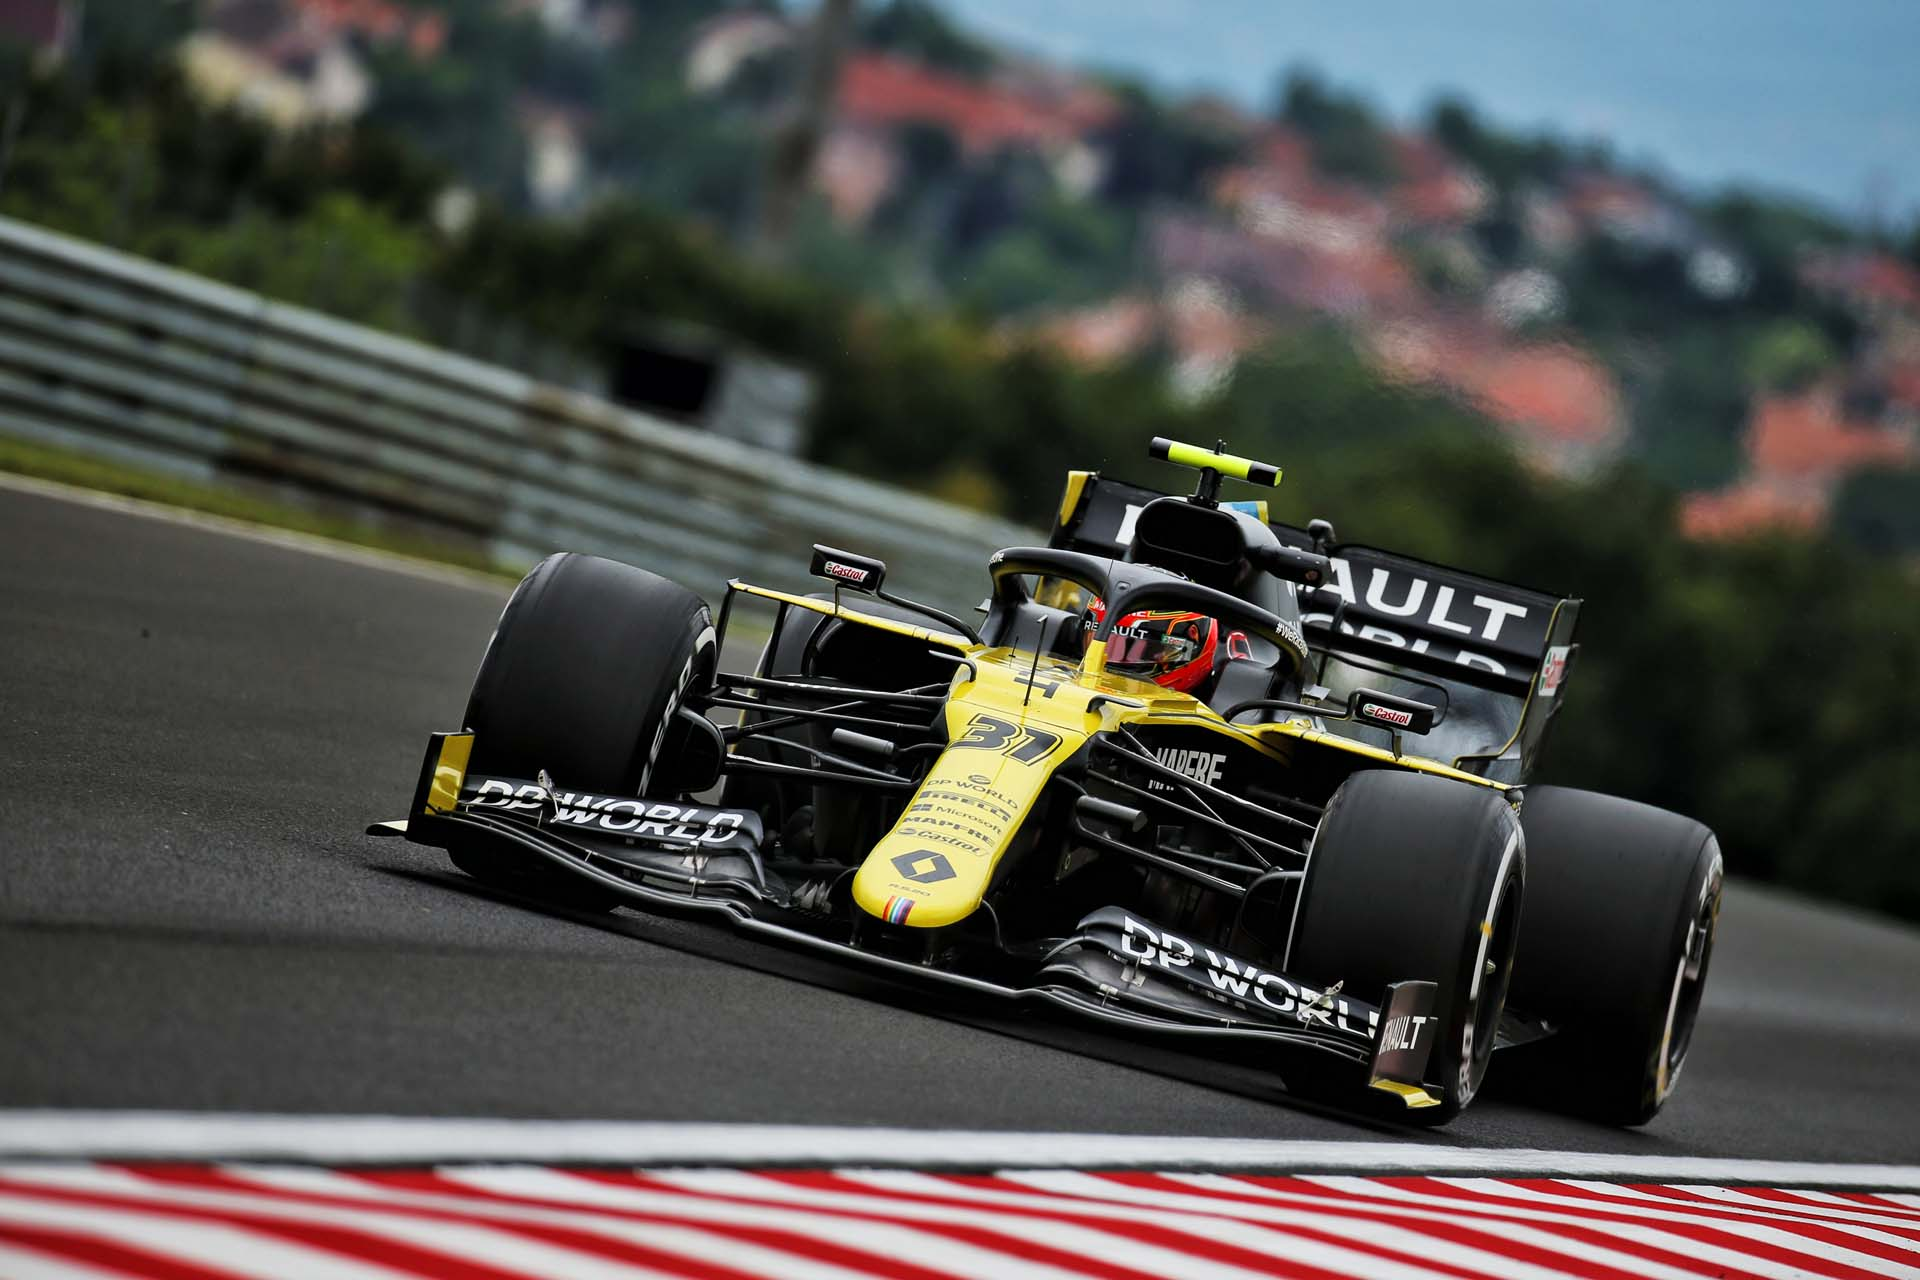 Motor Racing - Formula One World Championship - Hungarian Grand Prix - Practice Day - Budapest, Hungary